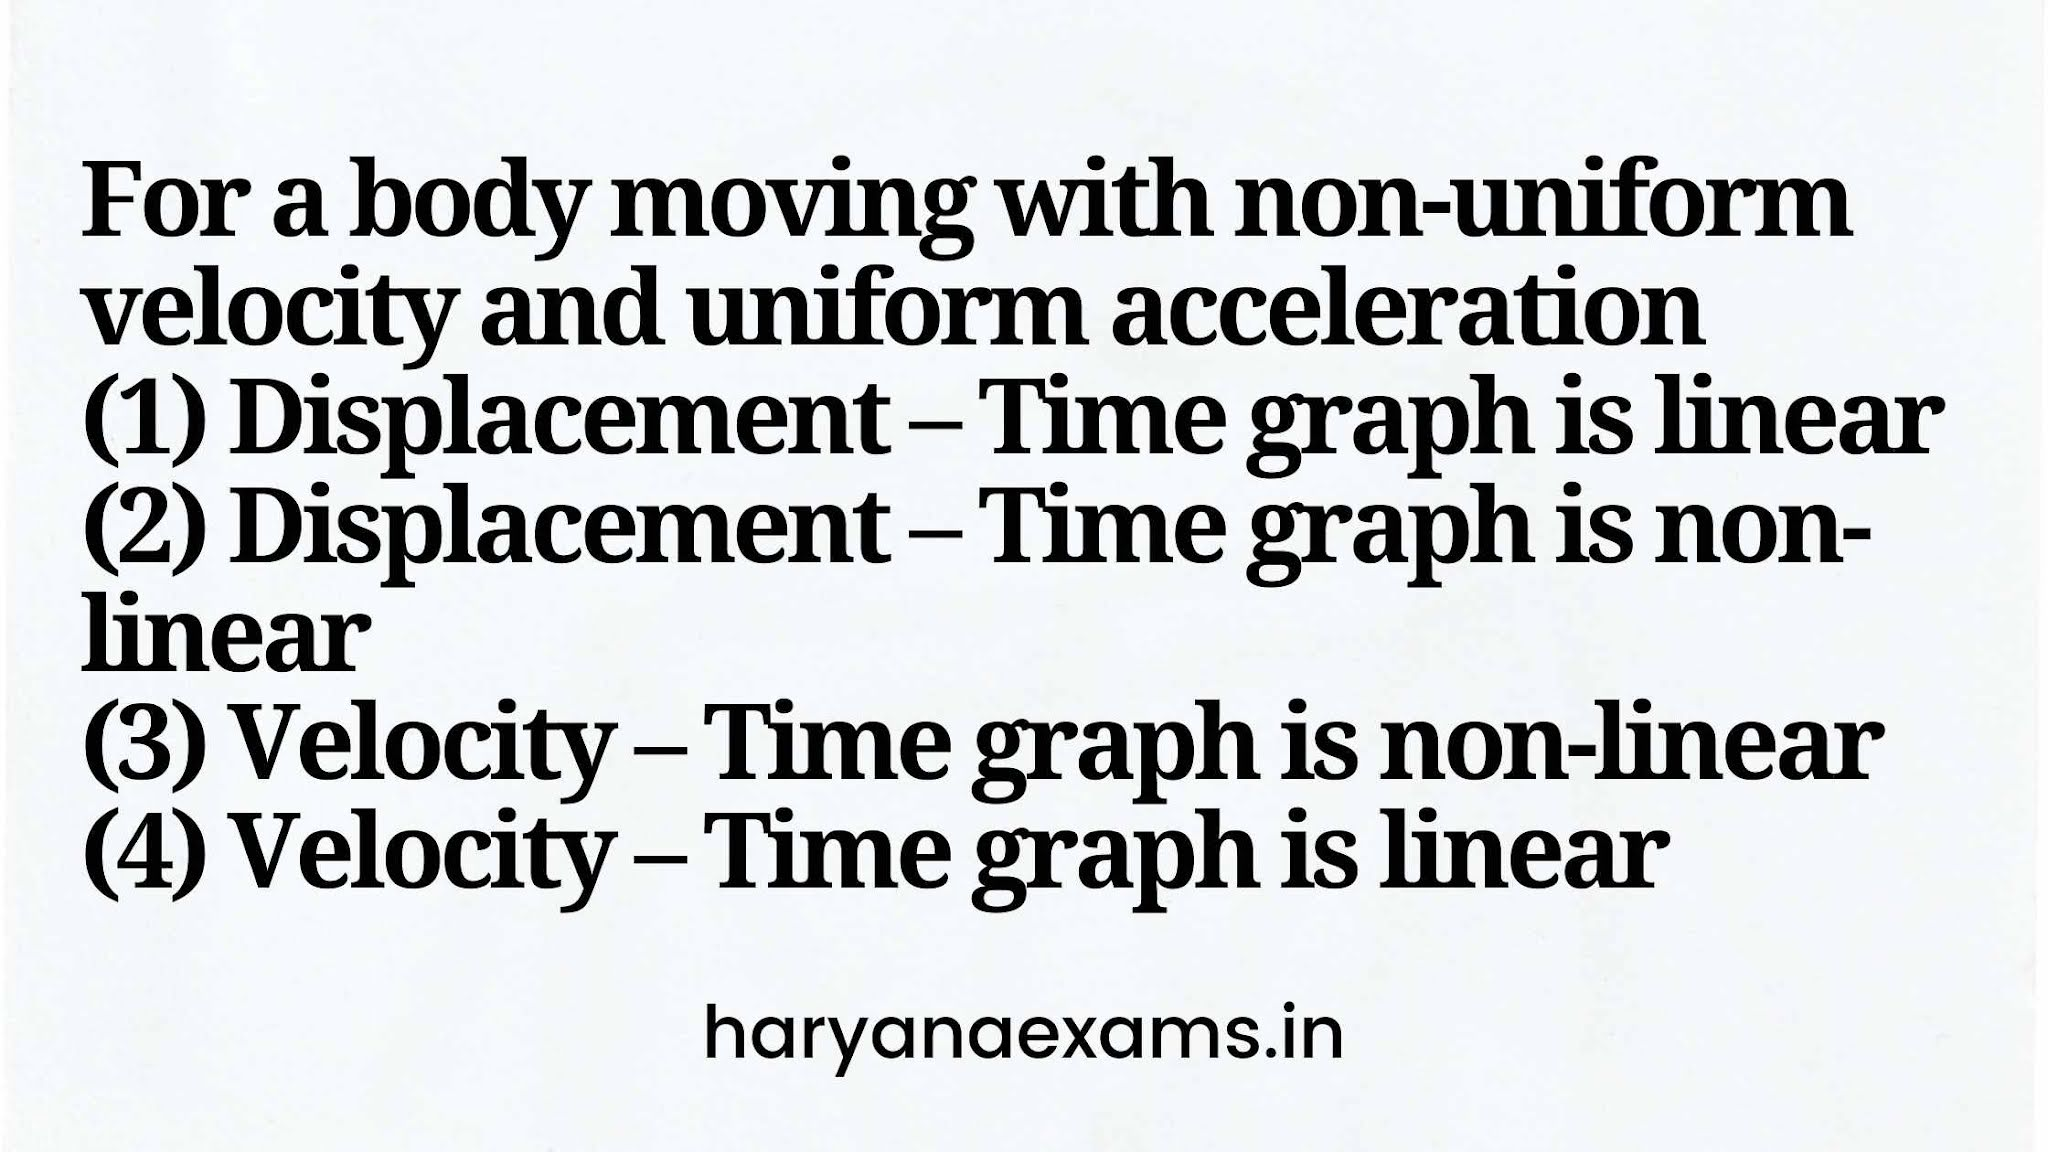 For a body moving with non-uniform velocity and uniform acceleration   (1) Displacement – Time graph is linear   (2) Displacement – Time graph is non-linear   (3) Velocity – Time graph is non-linear   (4) Velocity – Time graph is linear